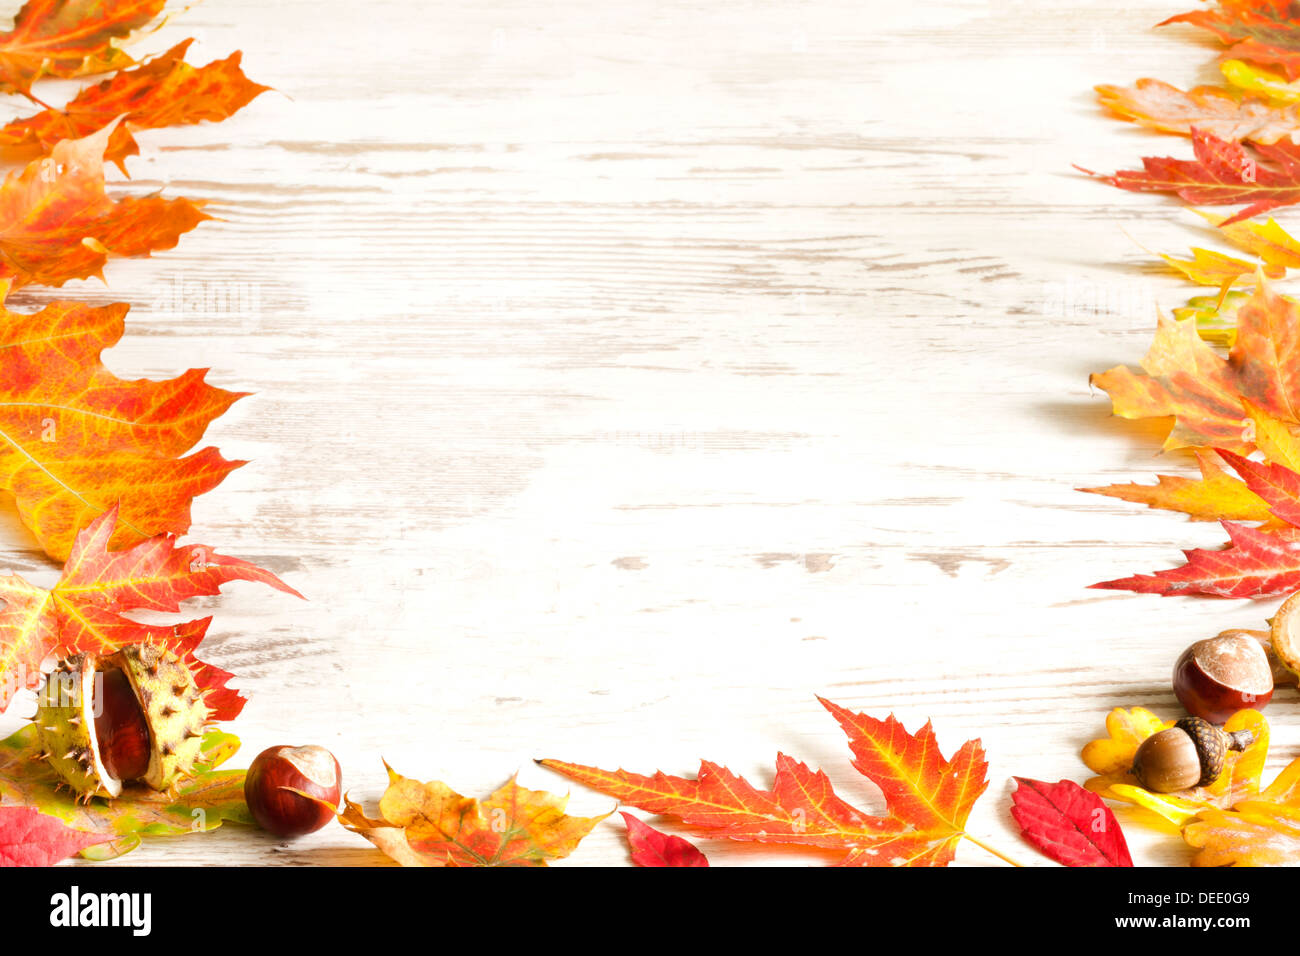 Autumn leaves on white boards background border - Stock Image